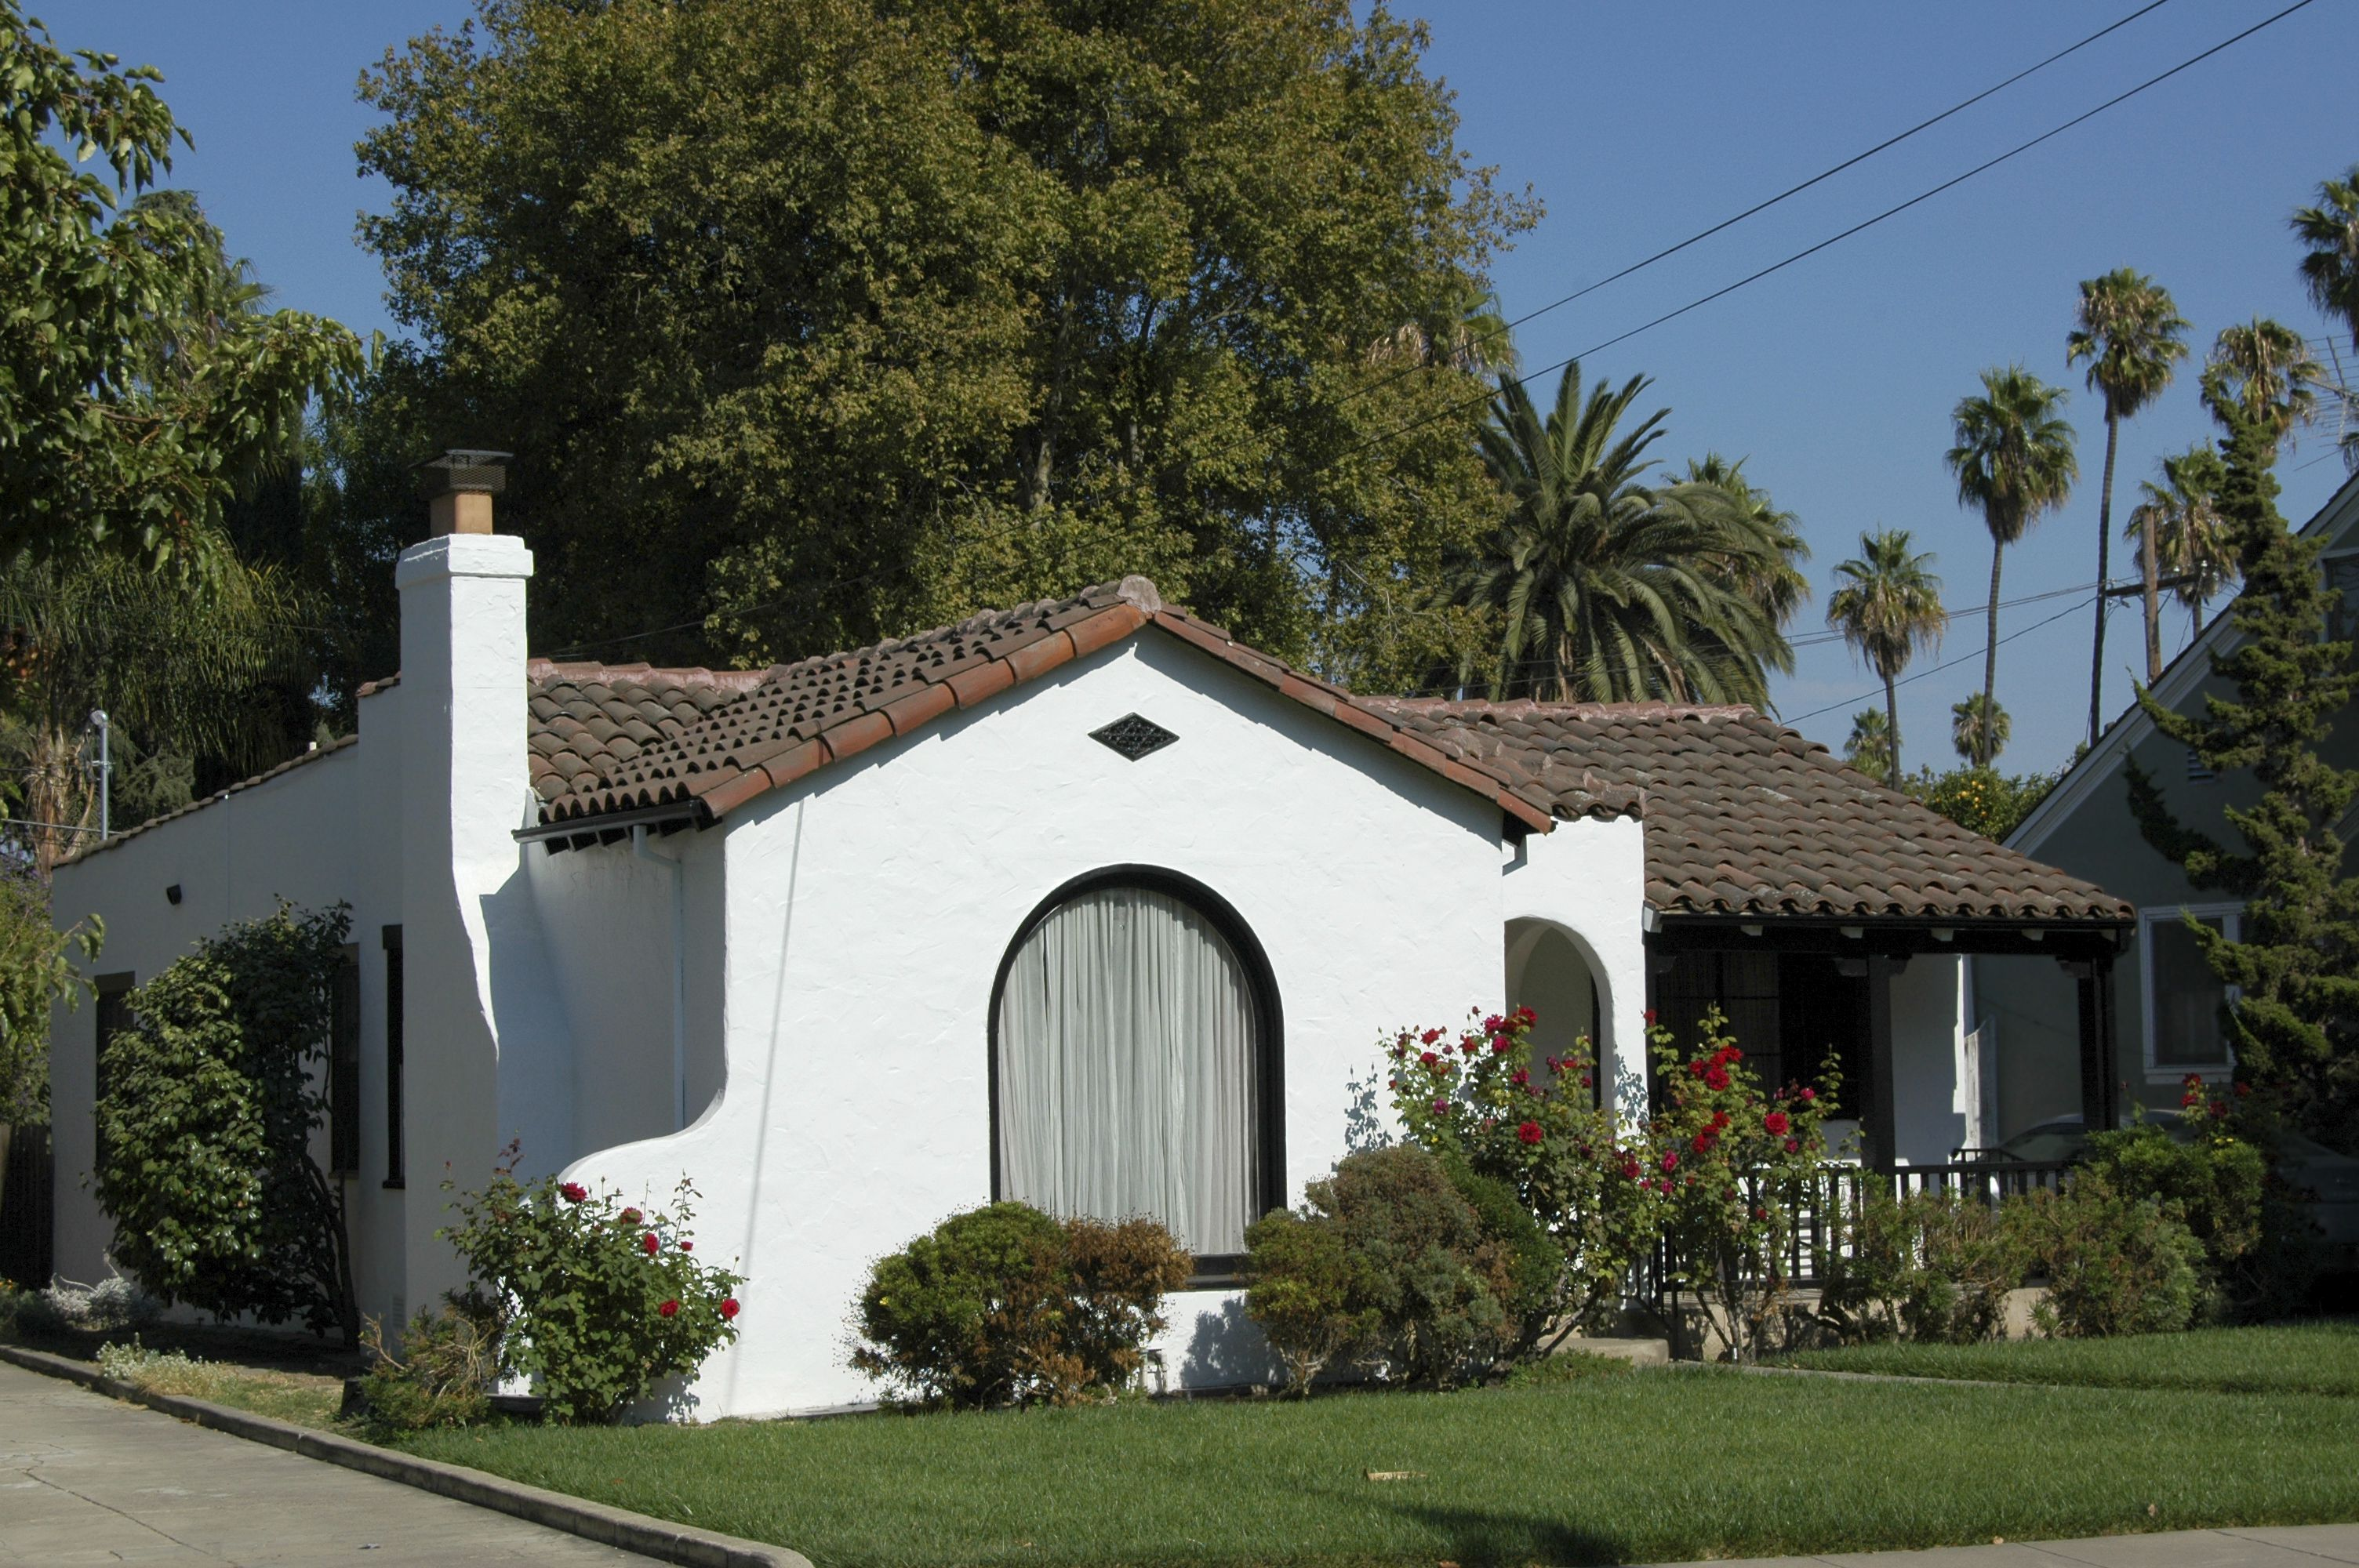 American Bungalow Style Houses 1905 1930